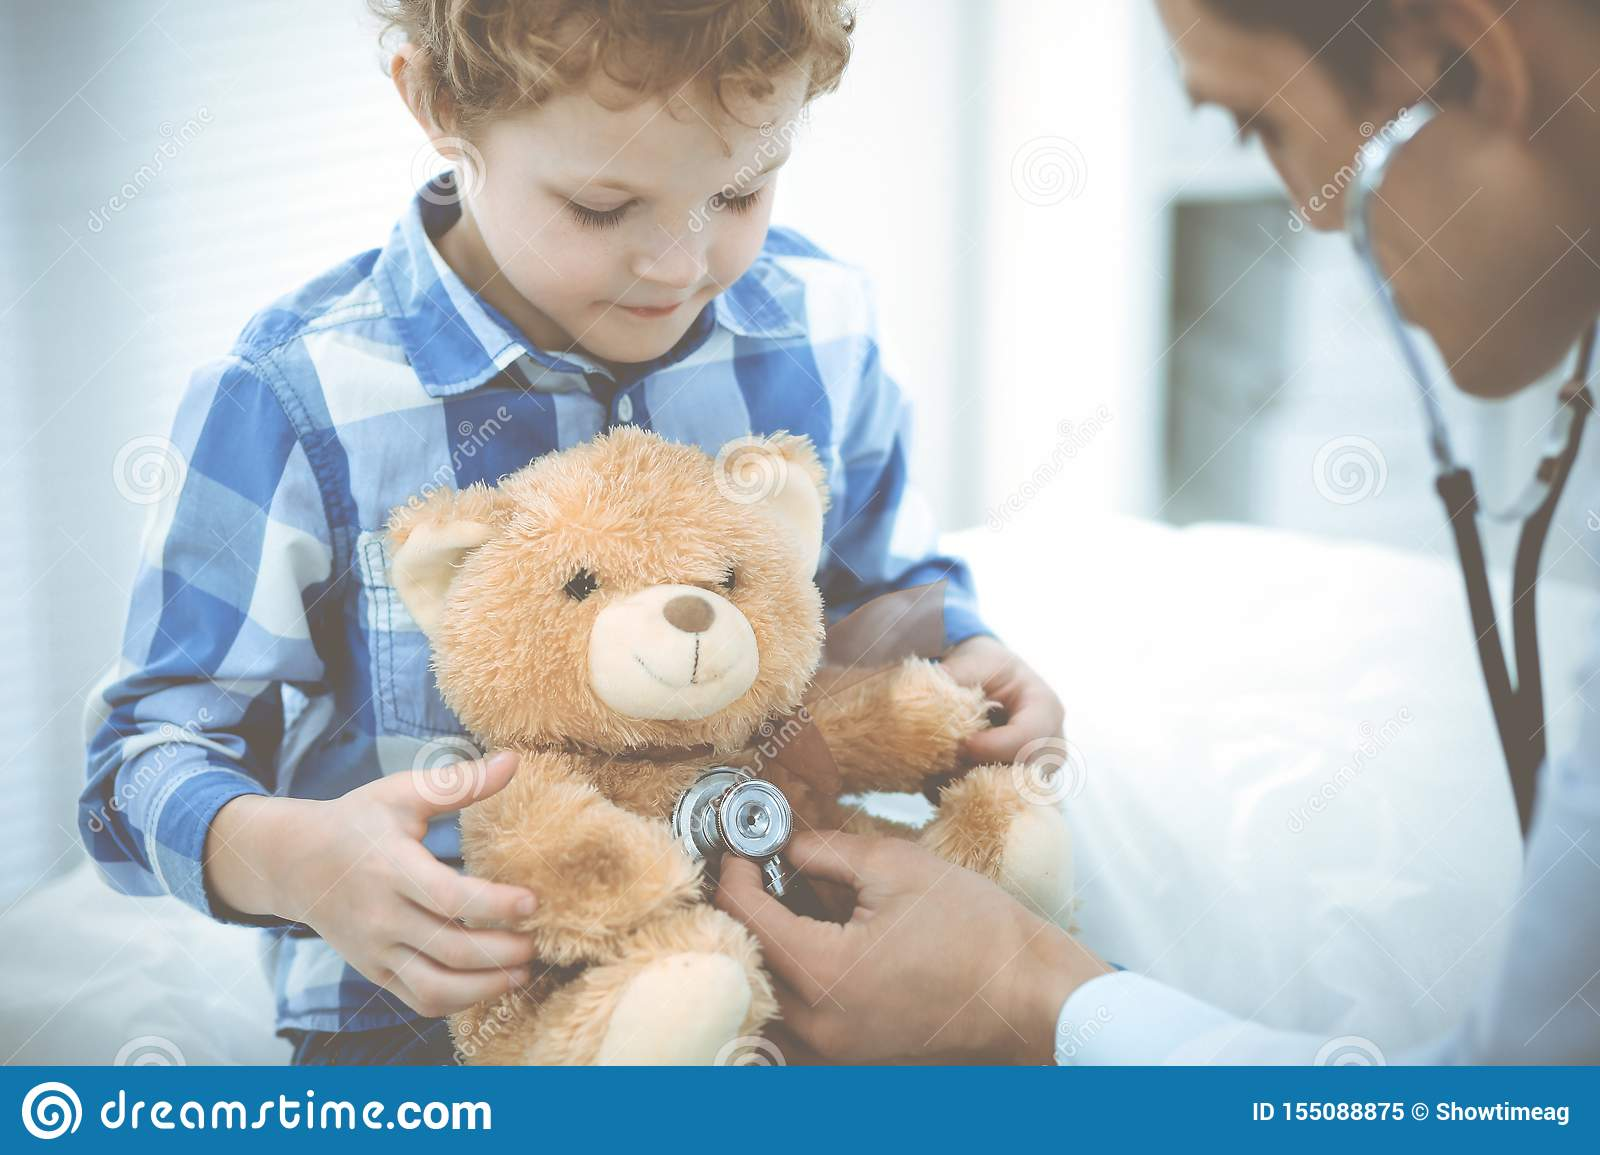 Doctor and patient child. Physician examining little boy. Regular medical visit in clinic. Medicine and health care